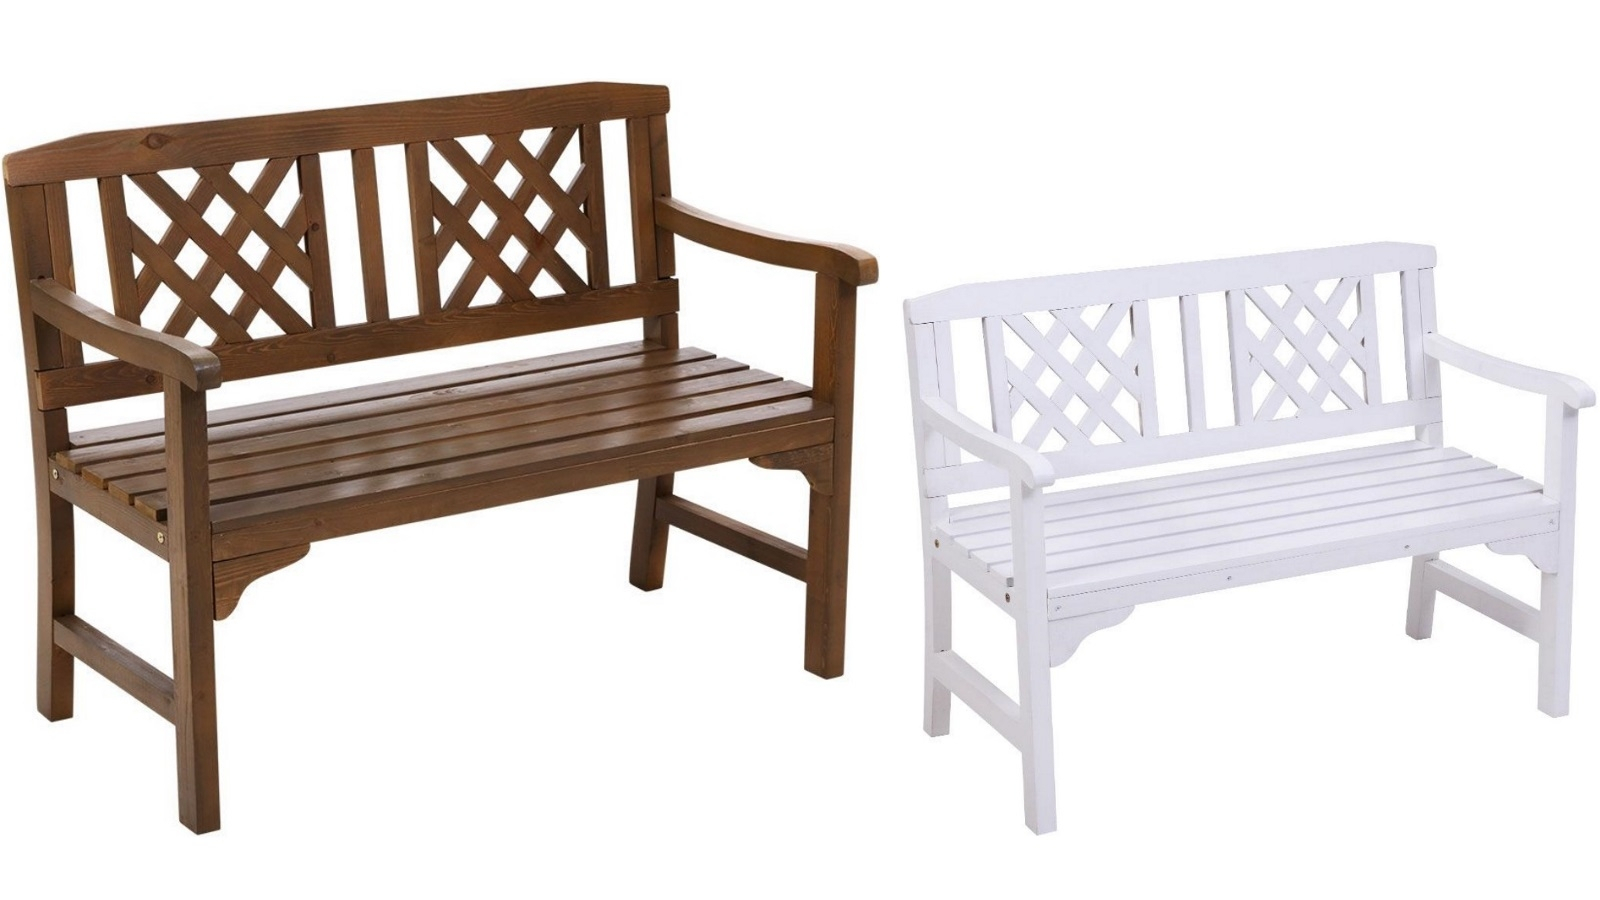 Gardeon 2 Seater Wooden Garden Bench Seat Within Manchester Solid Wood Garden Benches (View 7 of 25)